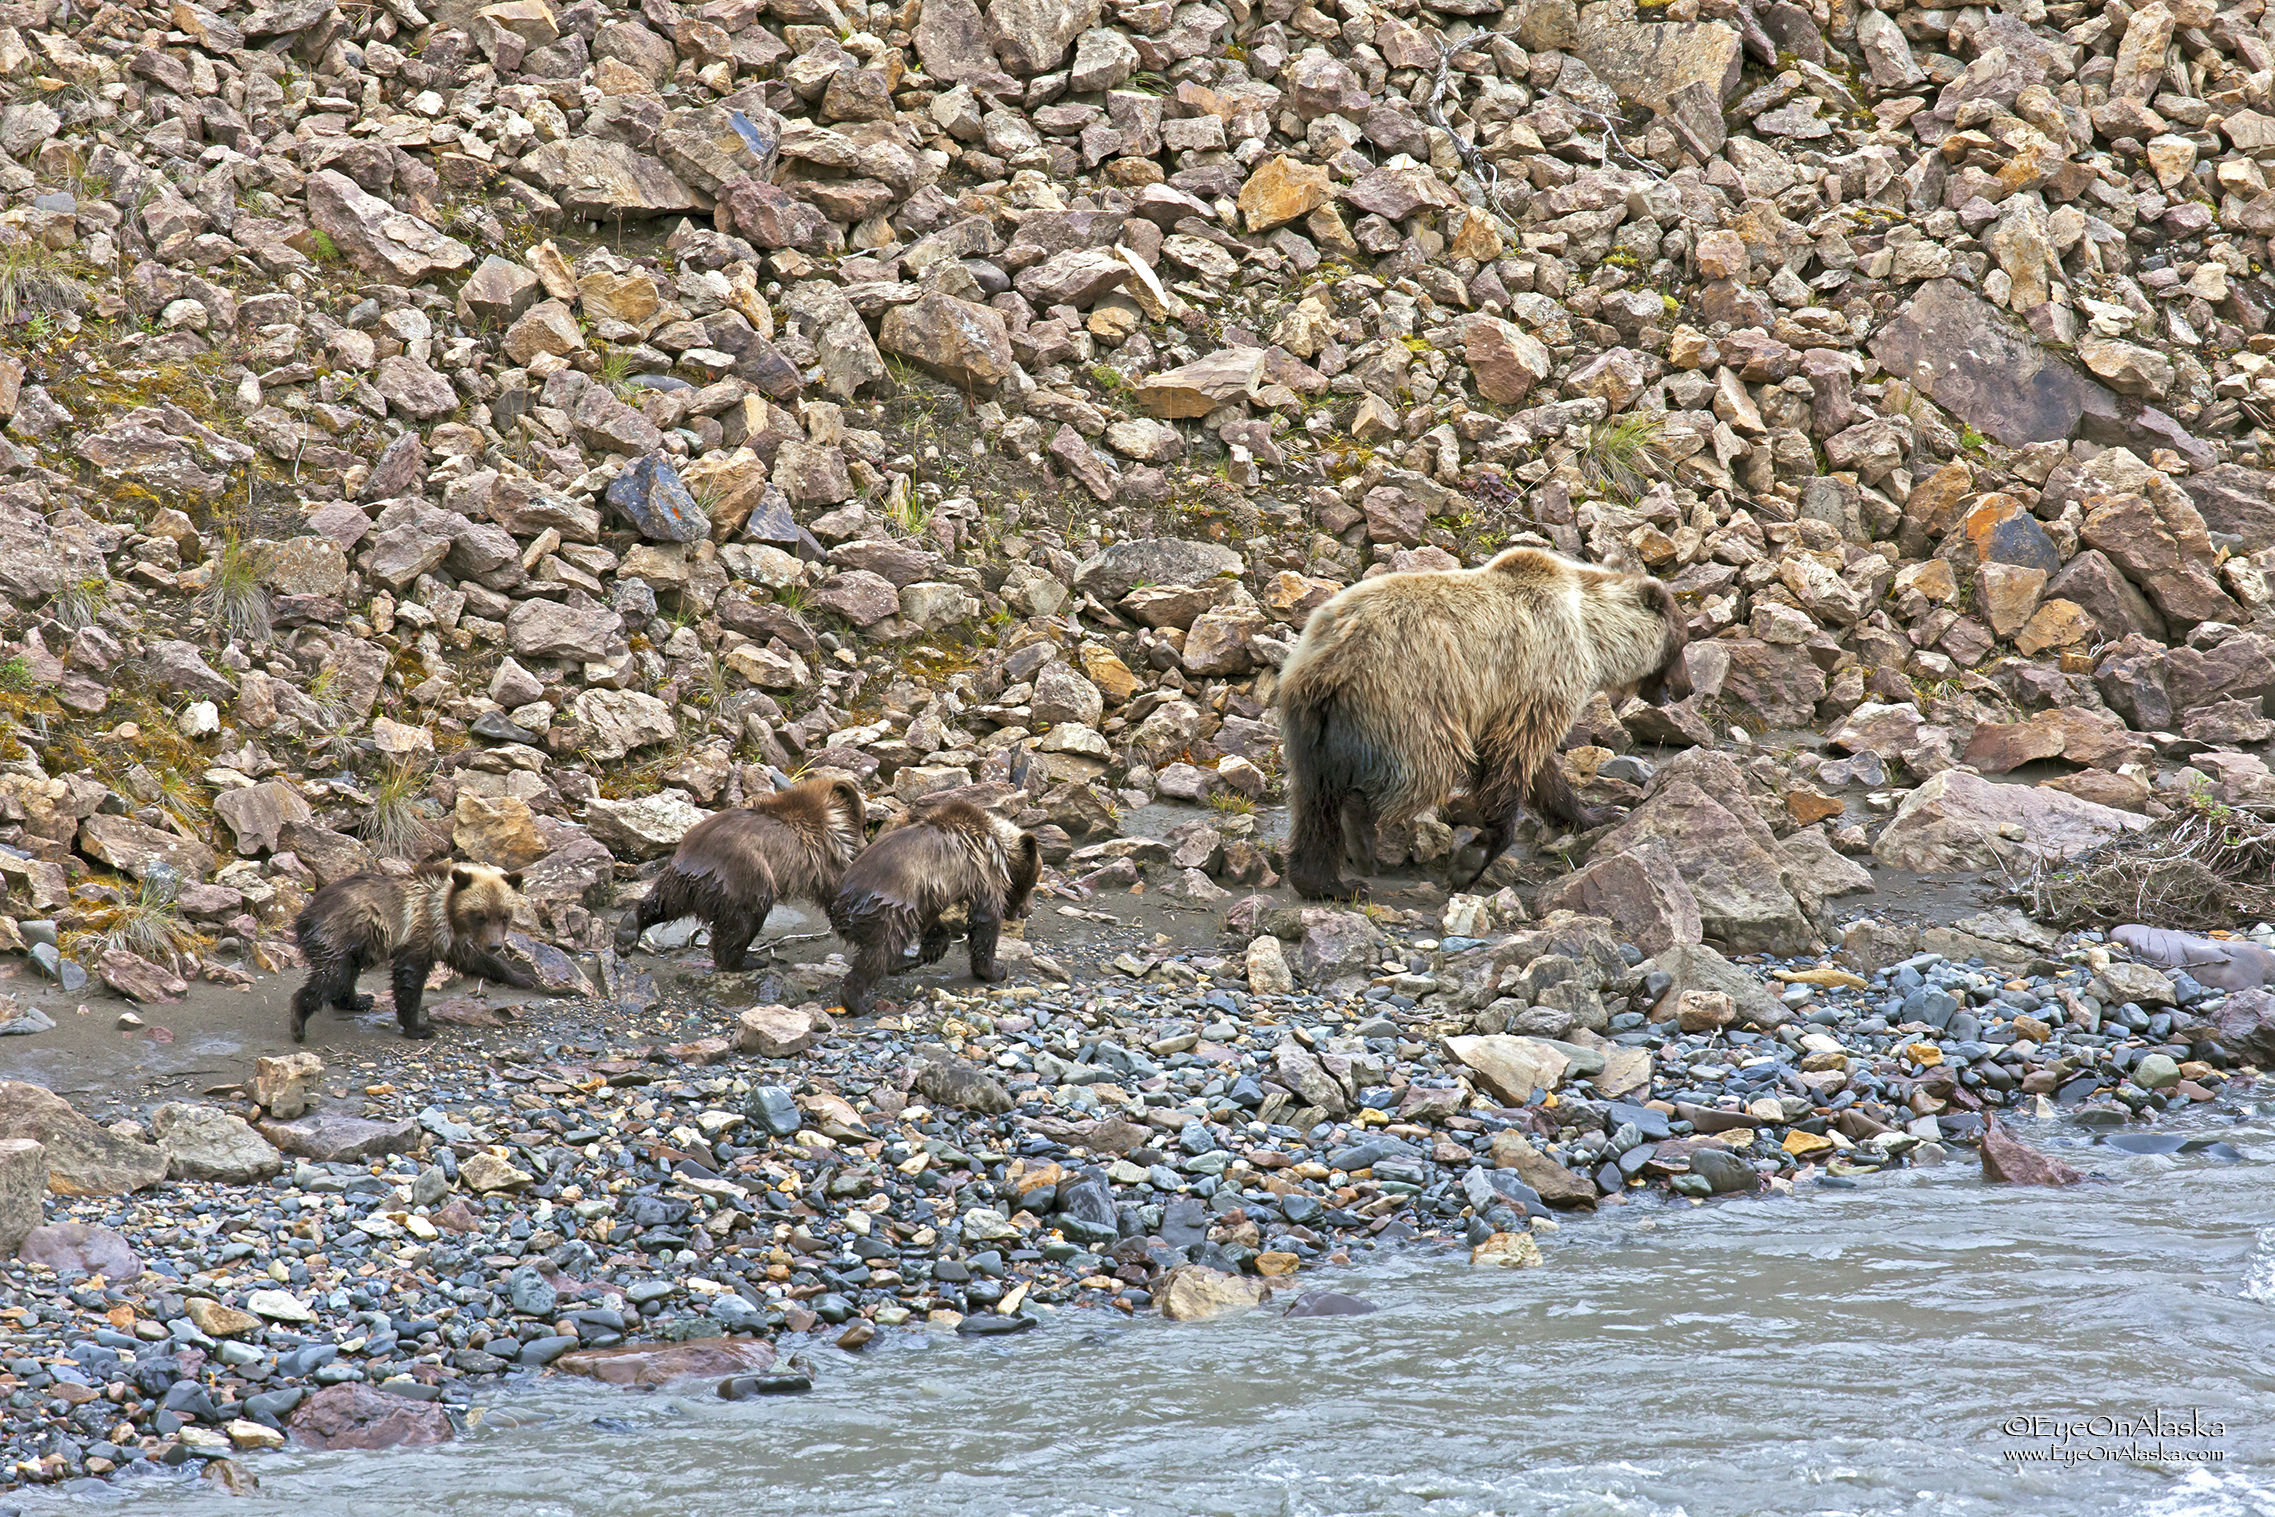 All four of them finally make it back to shore and the soggy bear family heads off uphill to the blueberry patches.